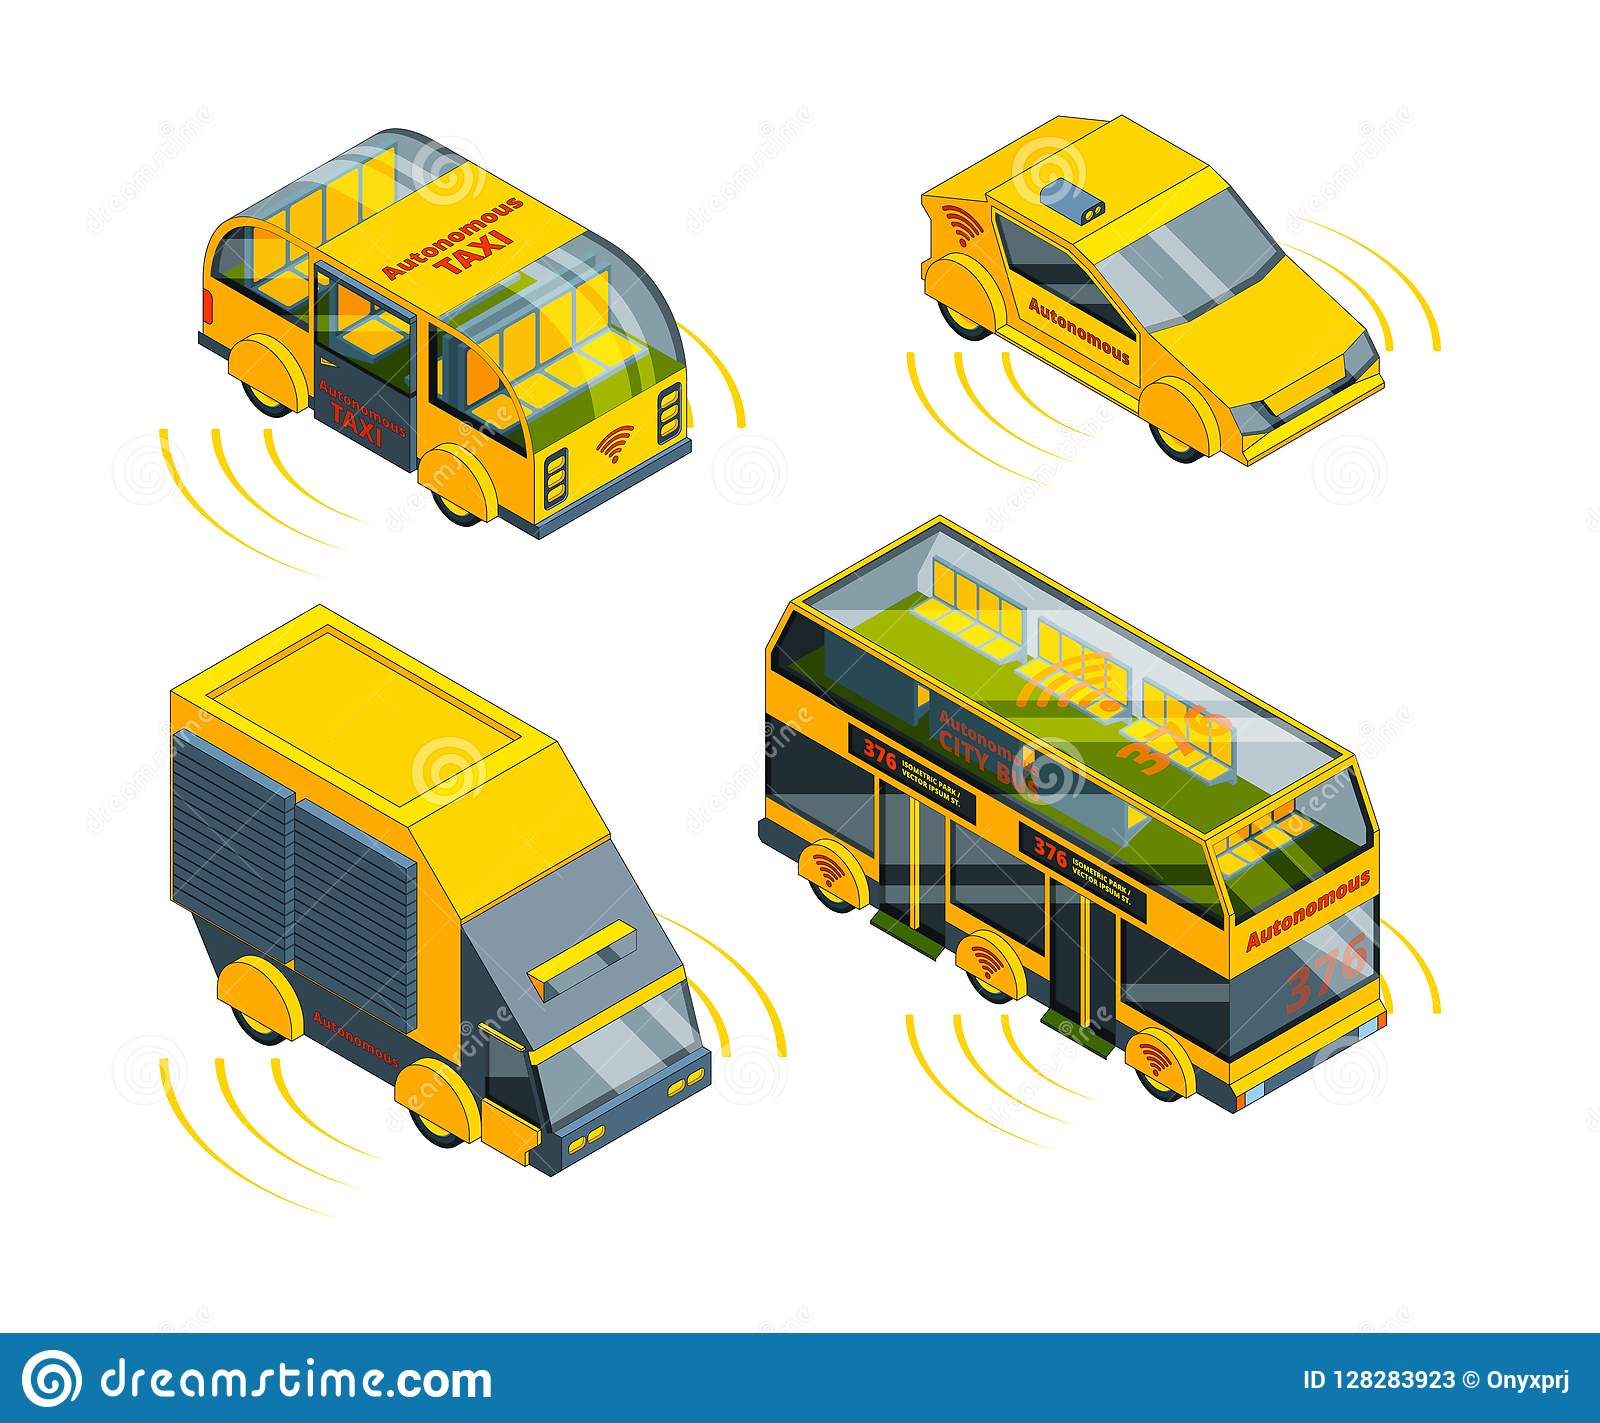 Autonomous vehicle. Unmanned transport at road emergency cars train taxi and buses isometric vector pictures